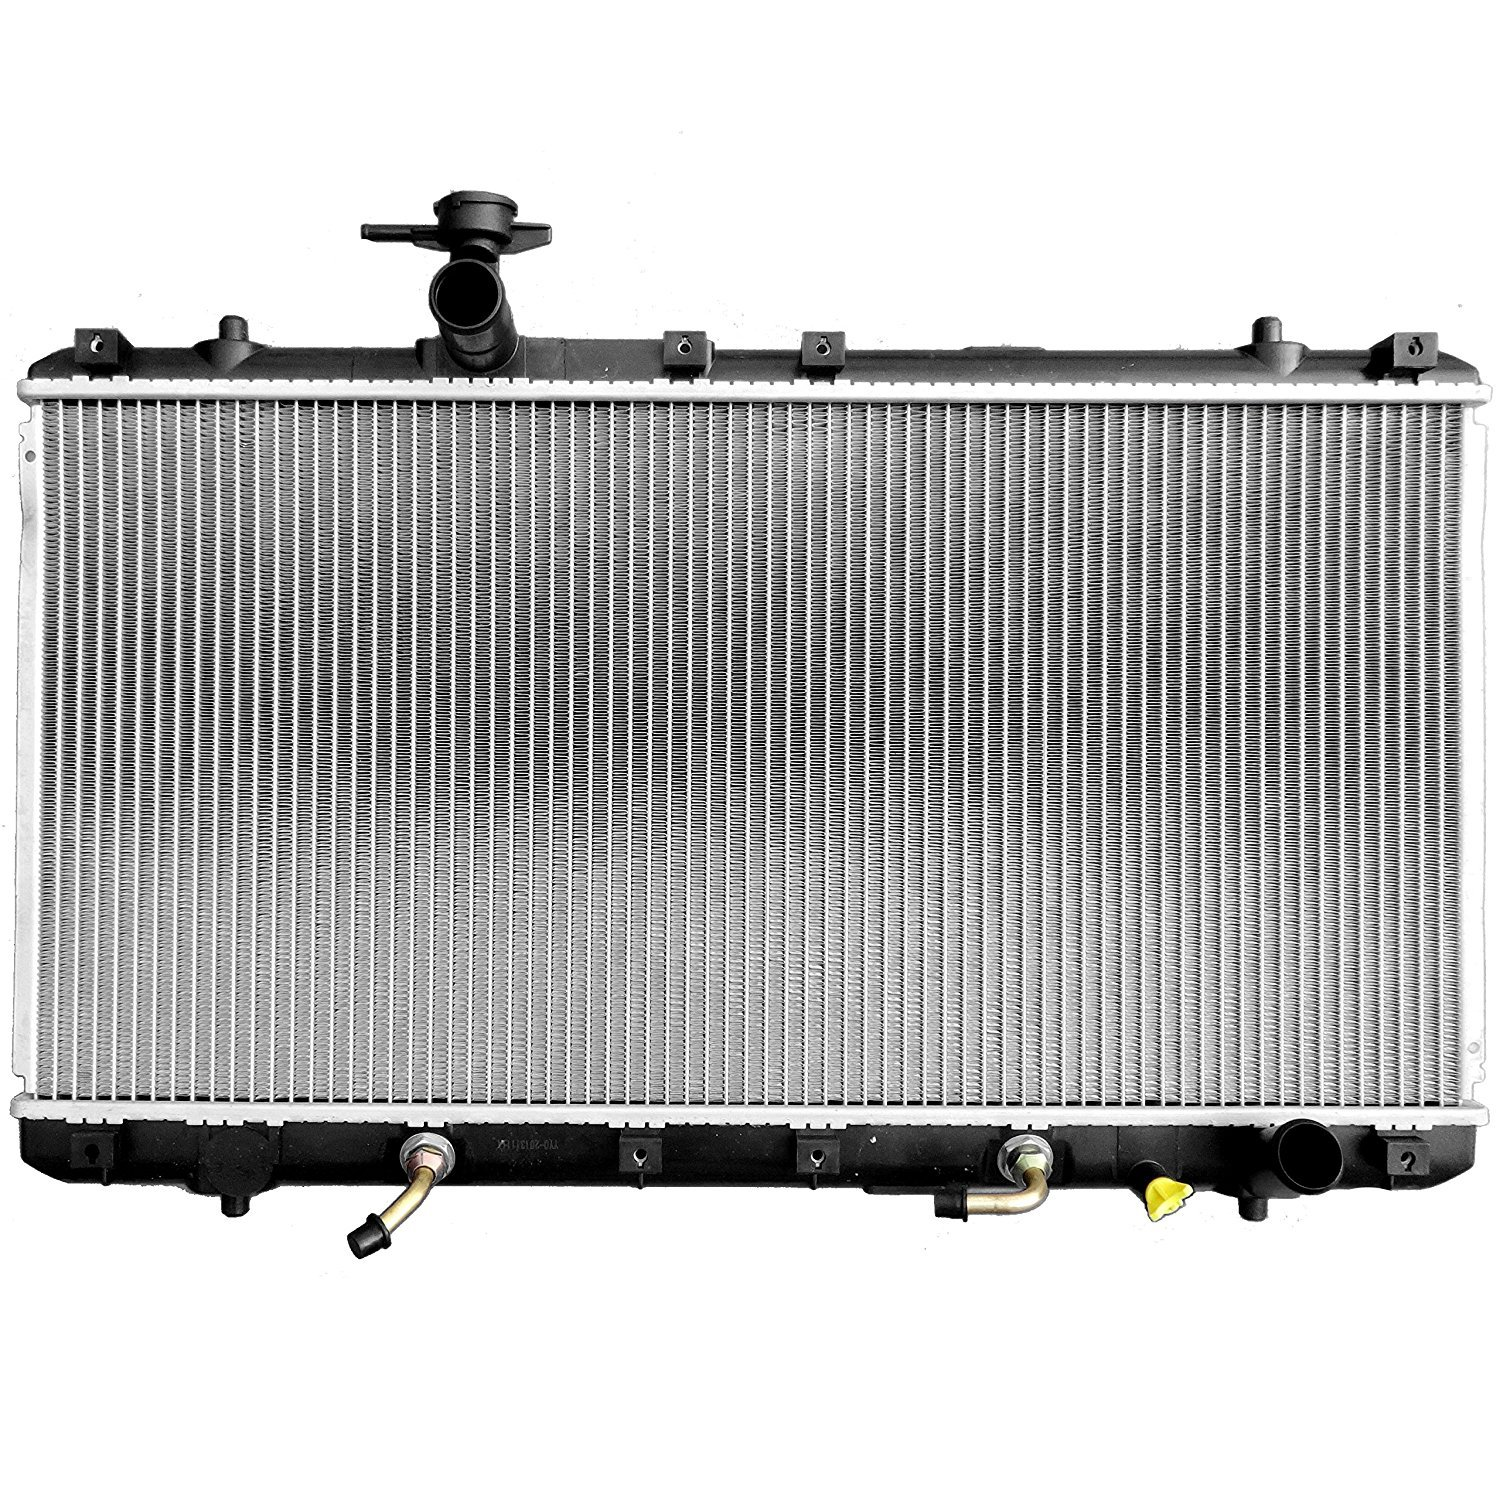 SCITOO Radiator LR2451 for Suzuki Aerio Base/GL/GLS/GS/LX/Premium/S/SX/SX Premium 2.3L 2.0L 2002-2007 by Scitoo